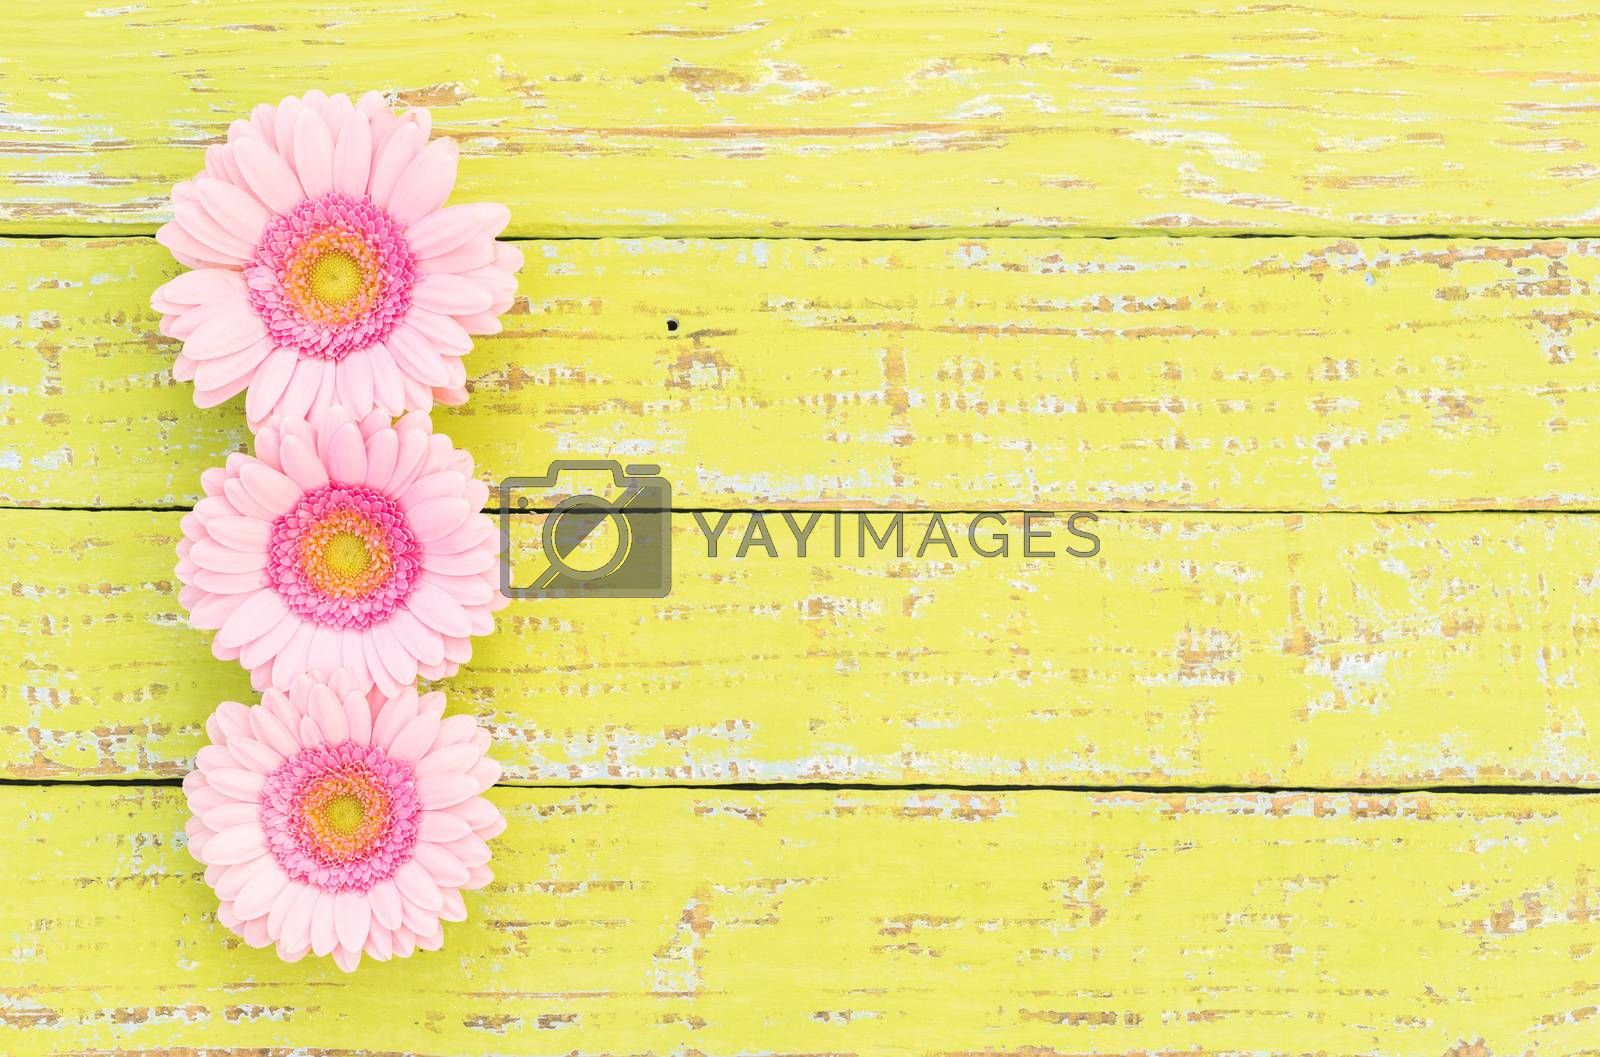 Gerbera daisy flowers in pastel pink on yellow wood, floral frame with copy space